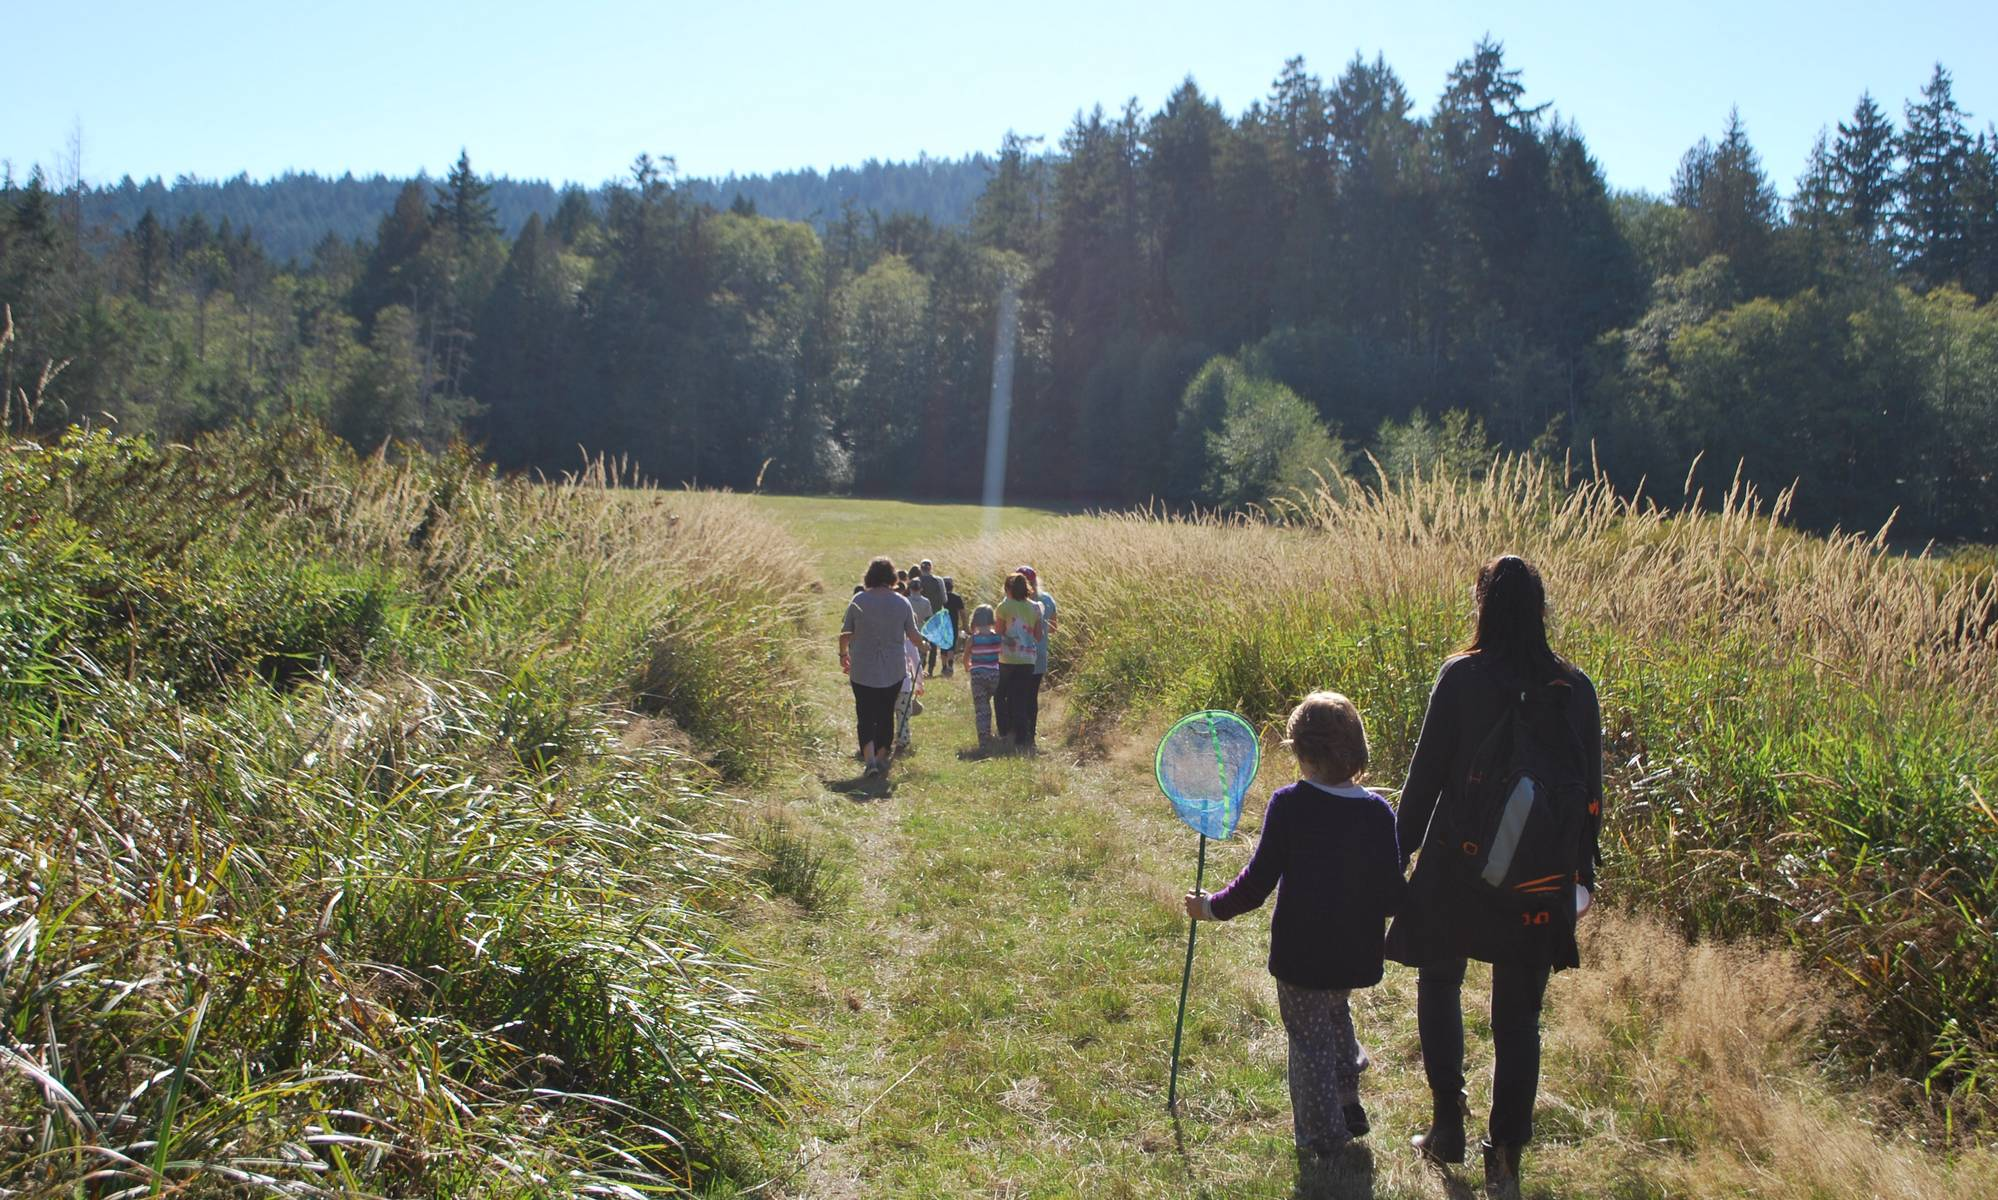 Students walk into a sunny field to catch insects.